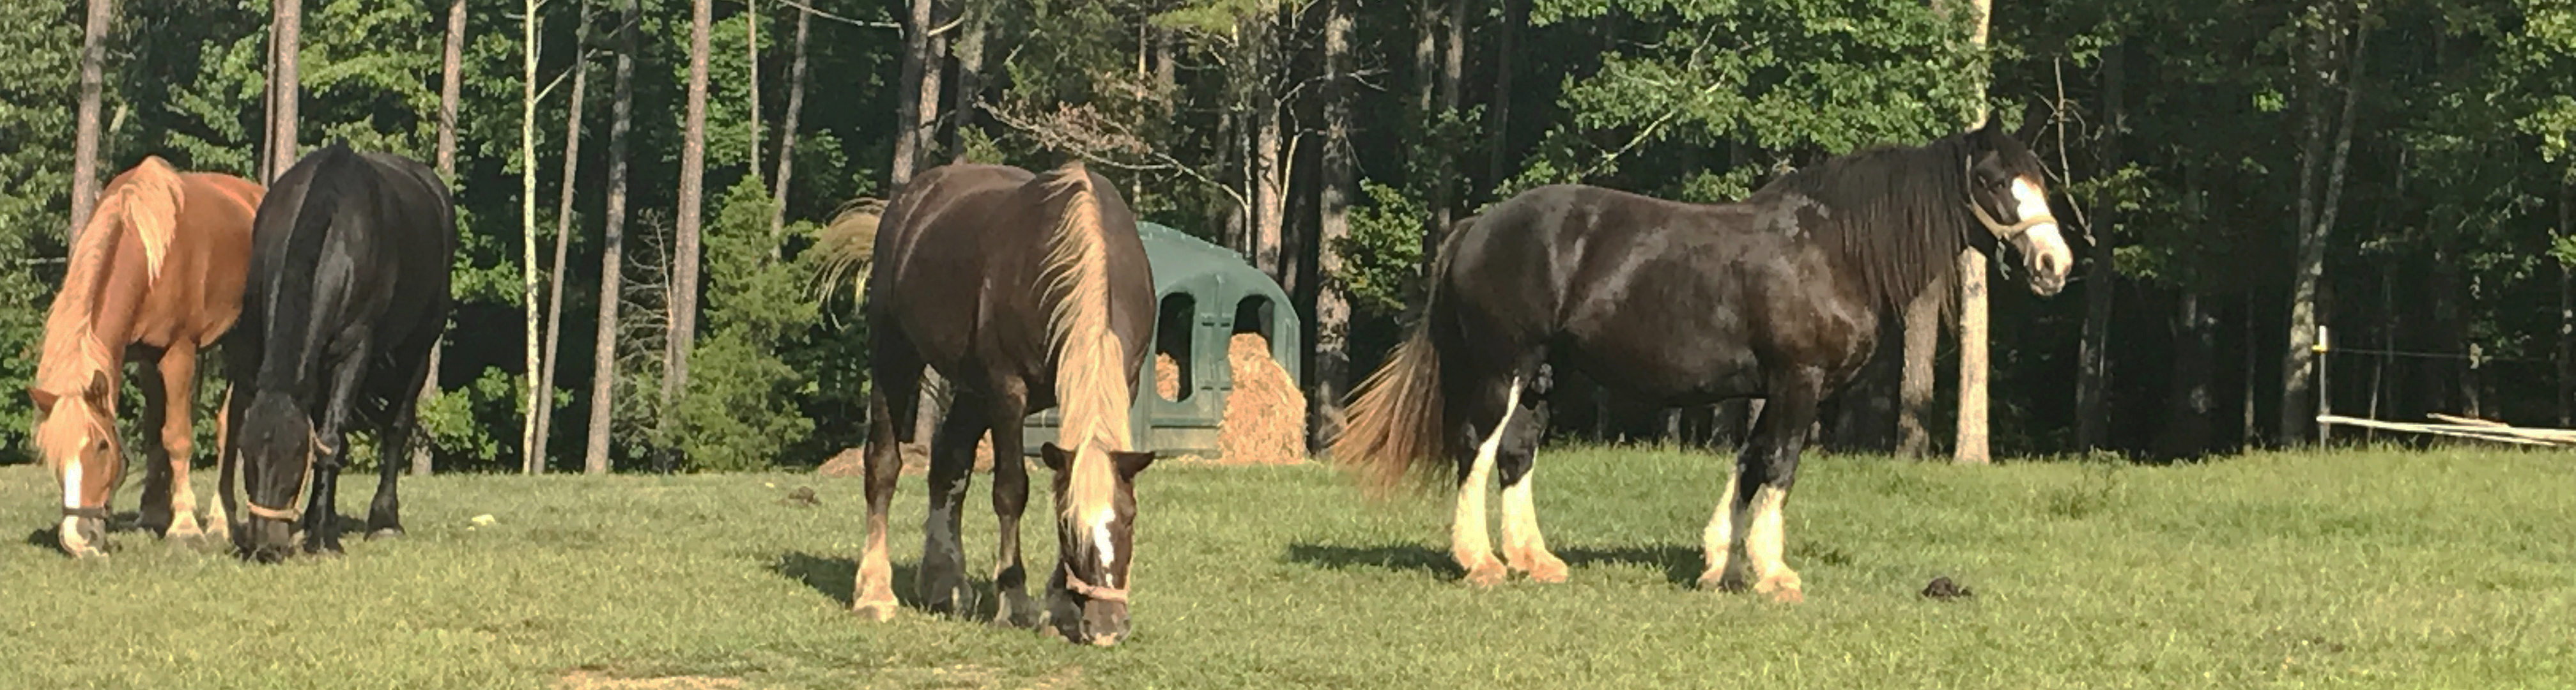 drafthorsesgrazing